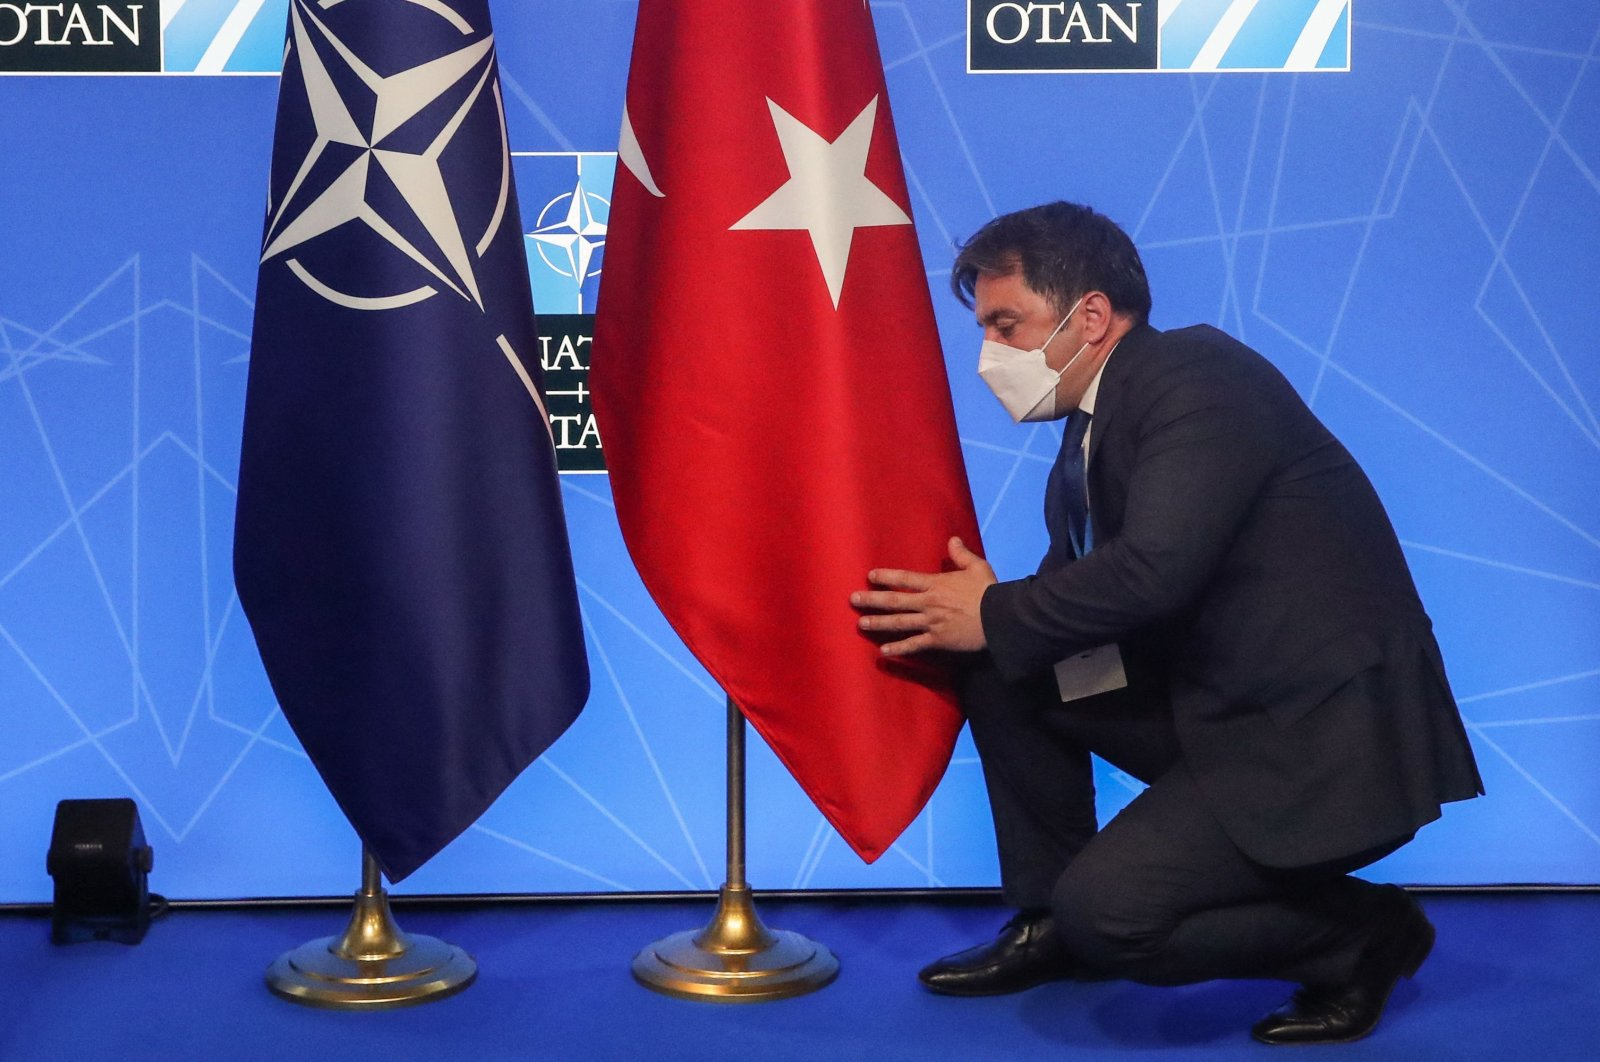 An official adjusts the Turkish flag before a news conference during a NATO summit in Brussels, June 14, 2021. (AFP Photo)